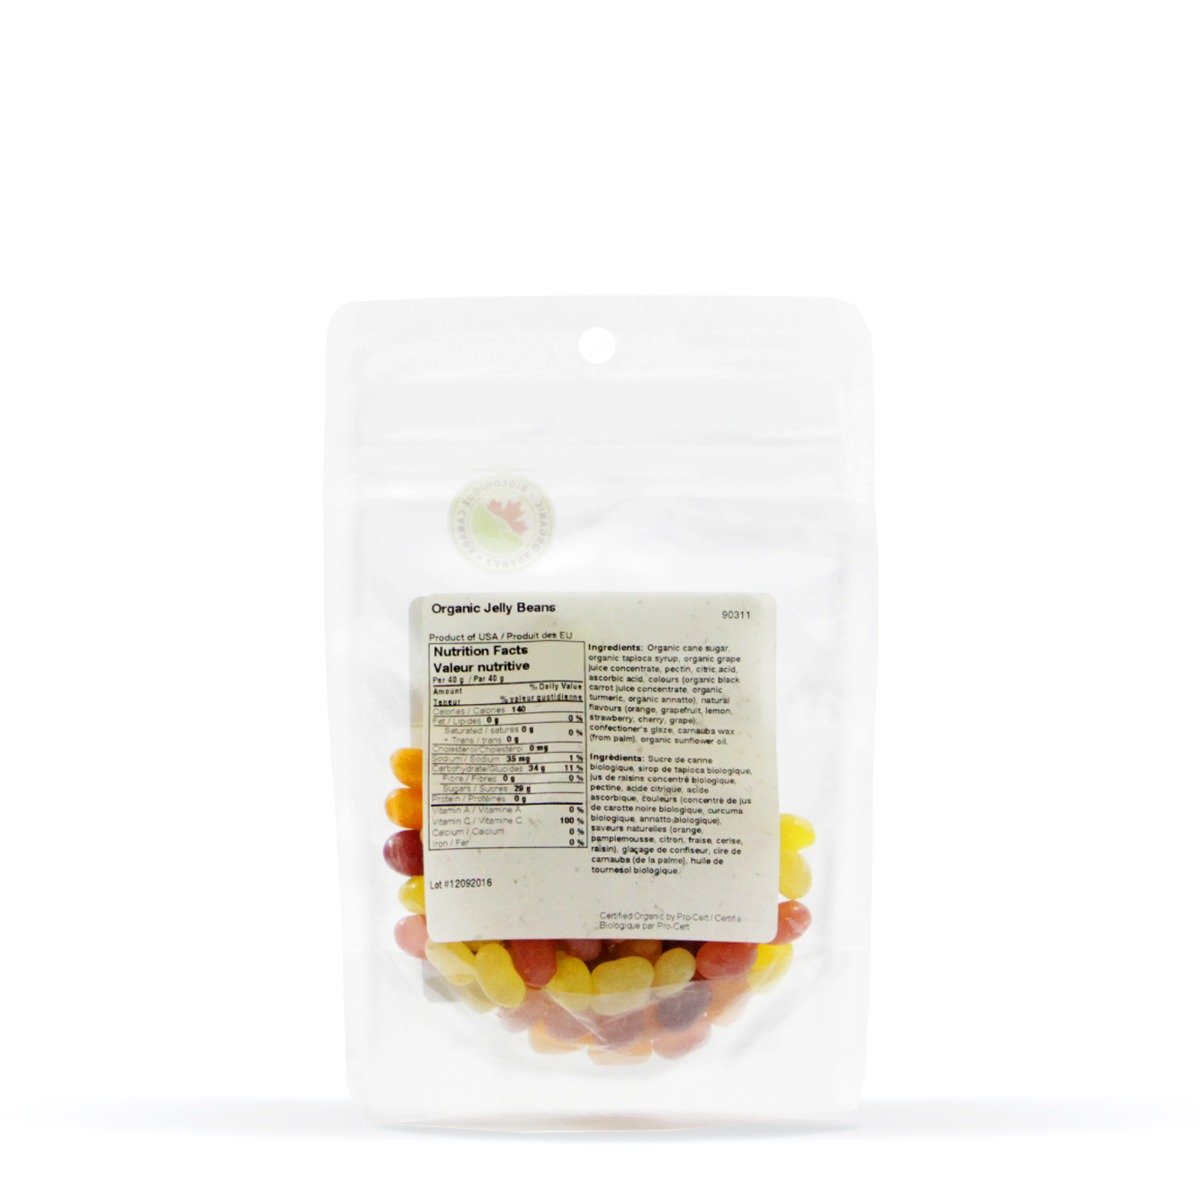 Nutritional Information for Real • Organic Jelly Beans